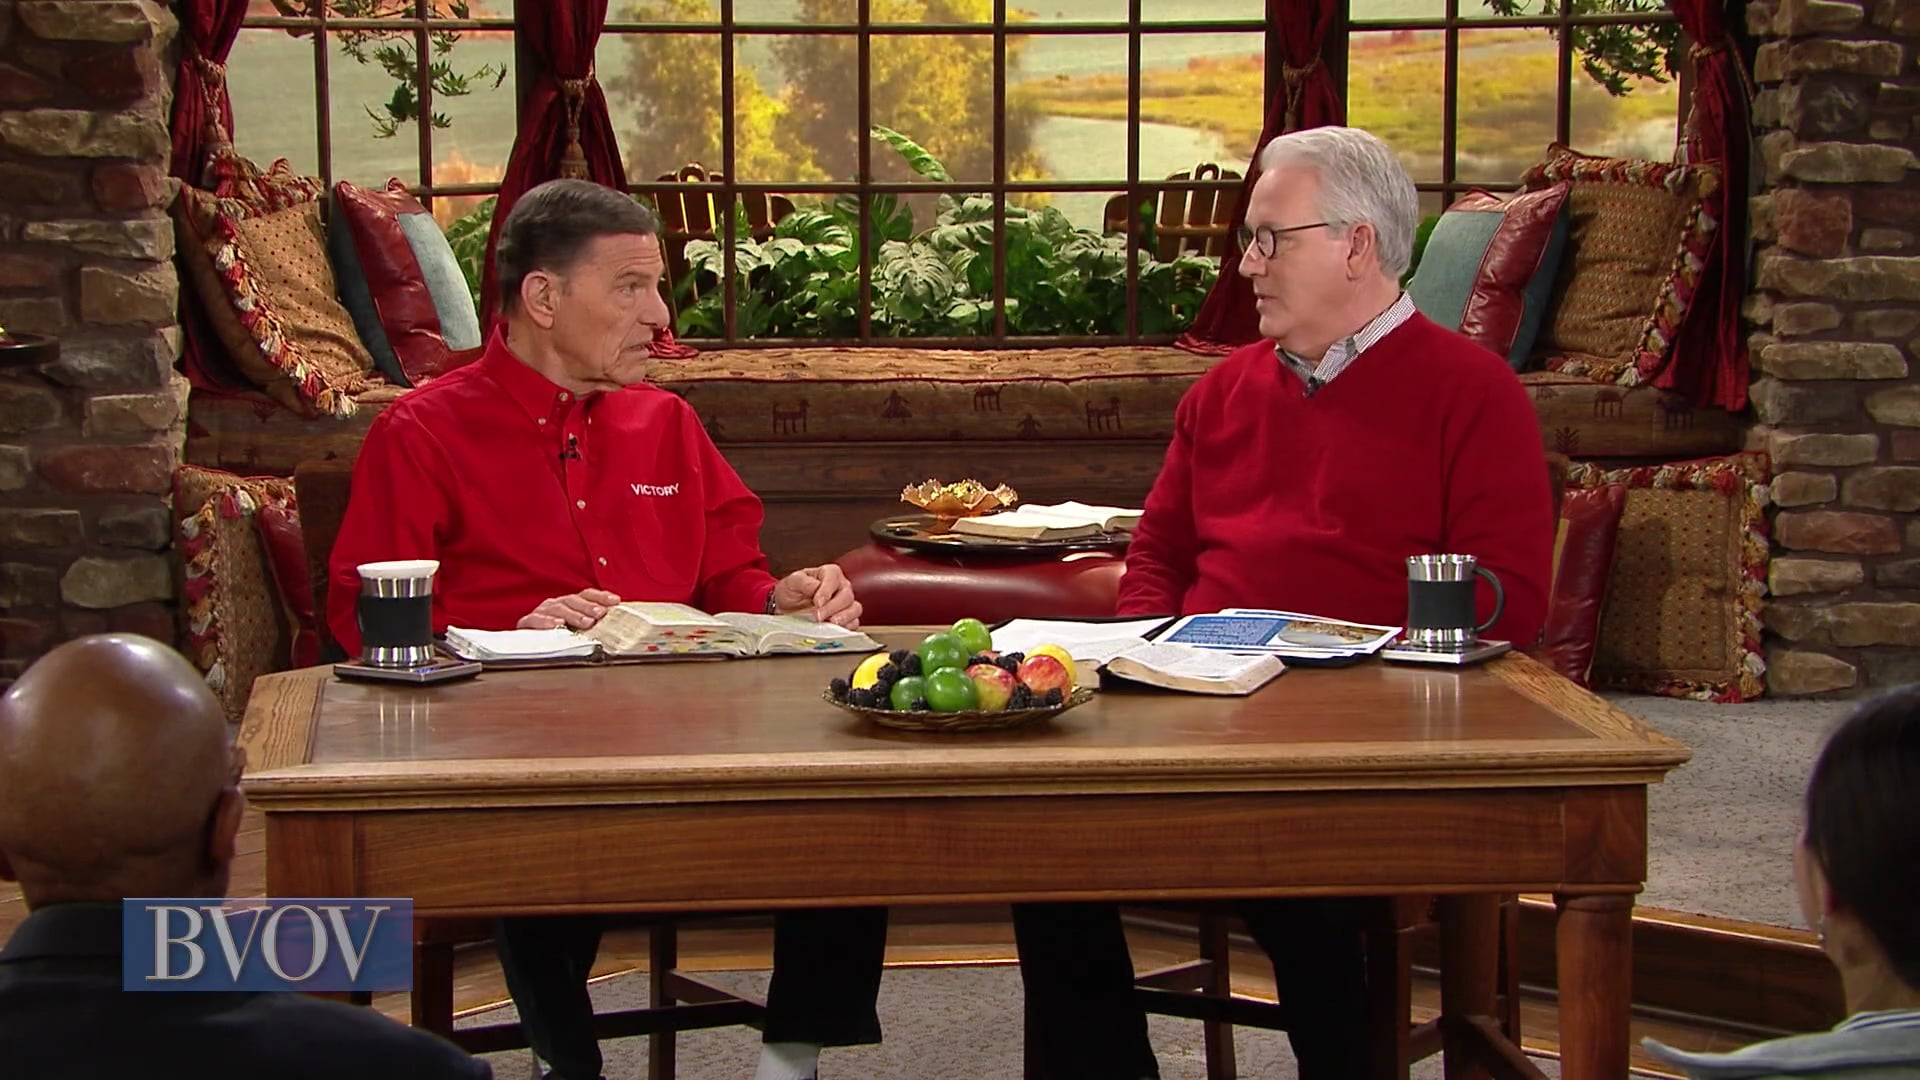 Watch Kenneth Copeland and Professor Greg Stephens on Believer's Voice of Victory as they share how divine direction comes from your covenant connection with God and anointed ministries. When you seek first His kingdom and His righteousness, and all these things are added—that's covenant partnership!